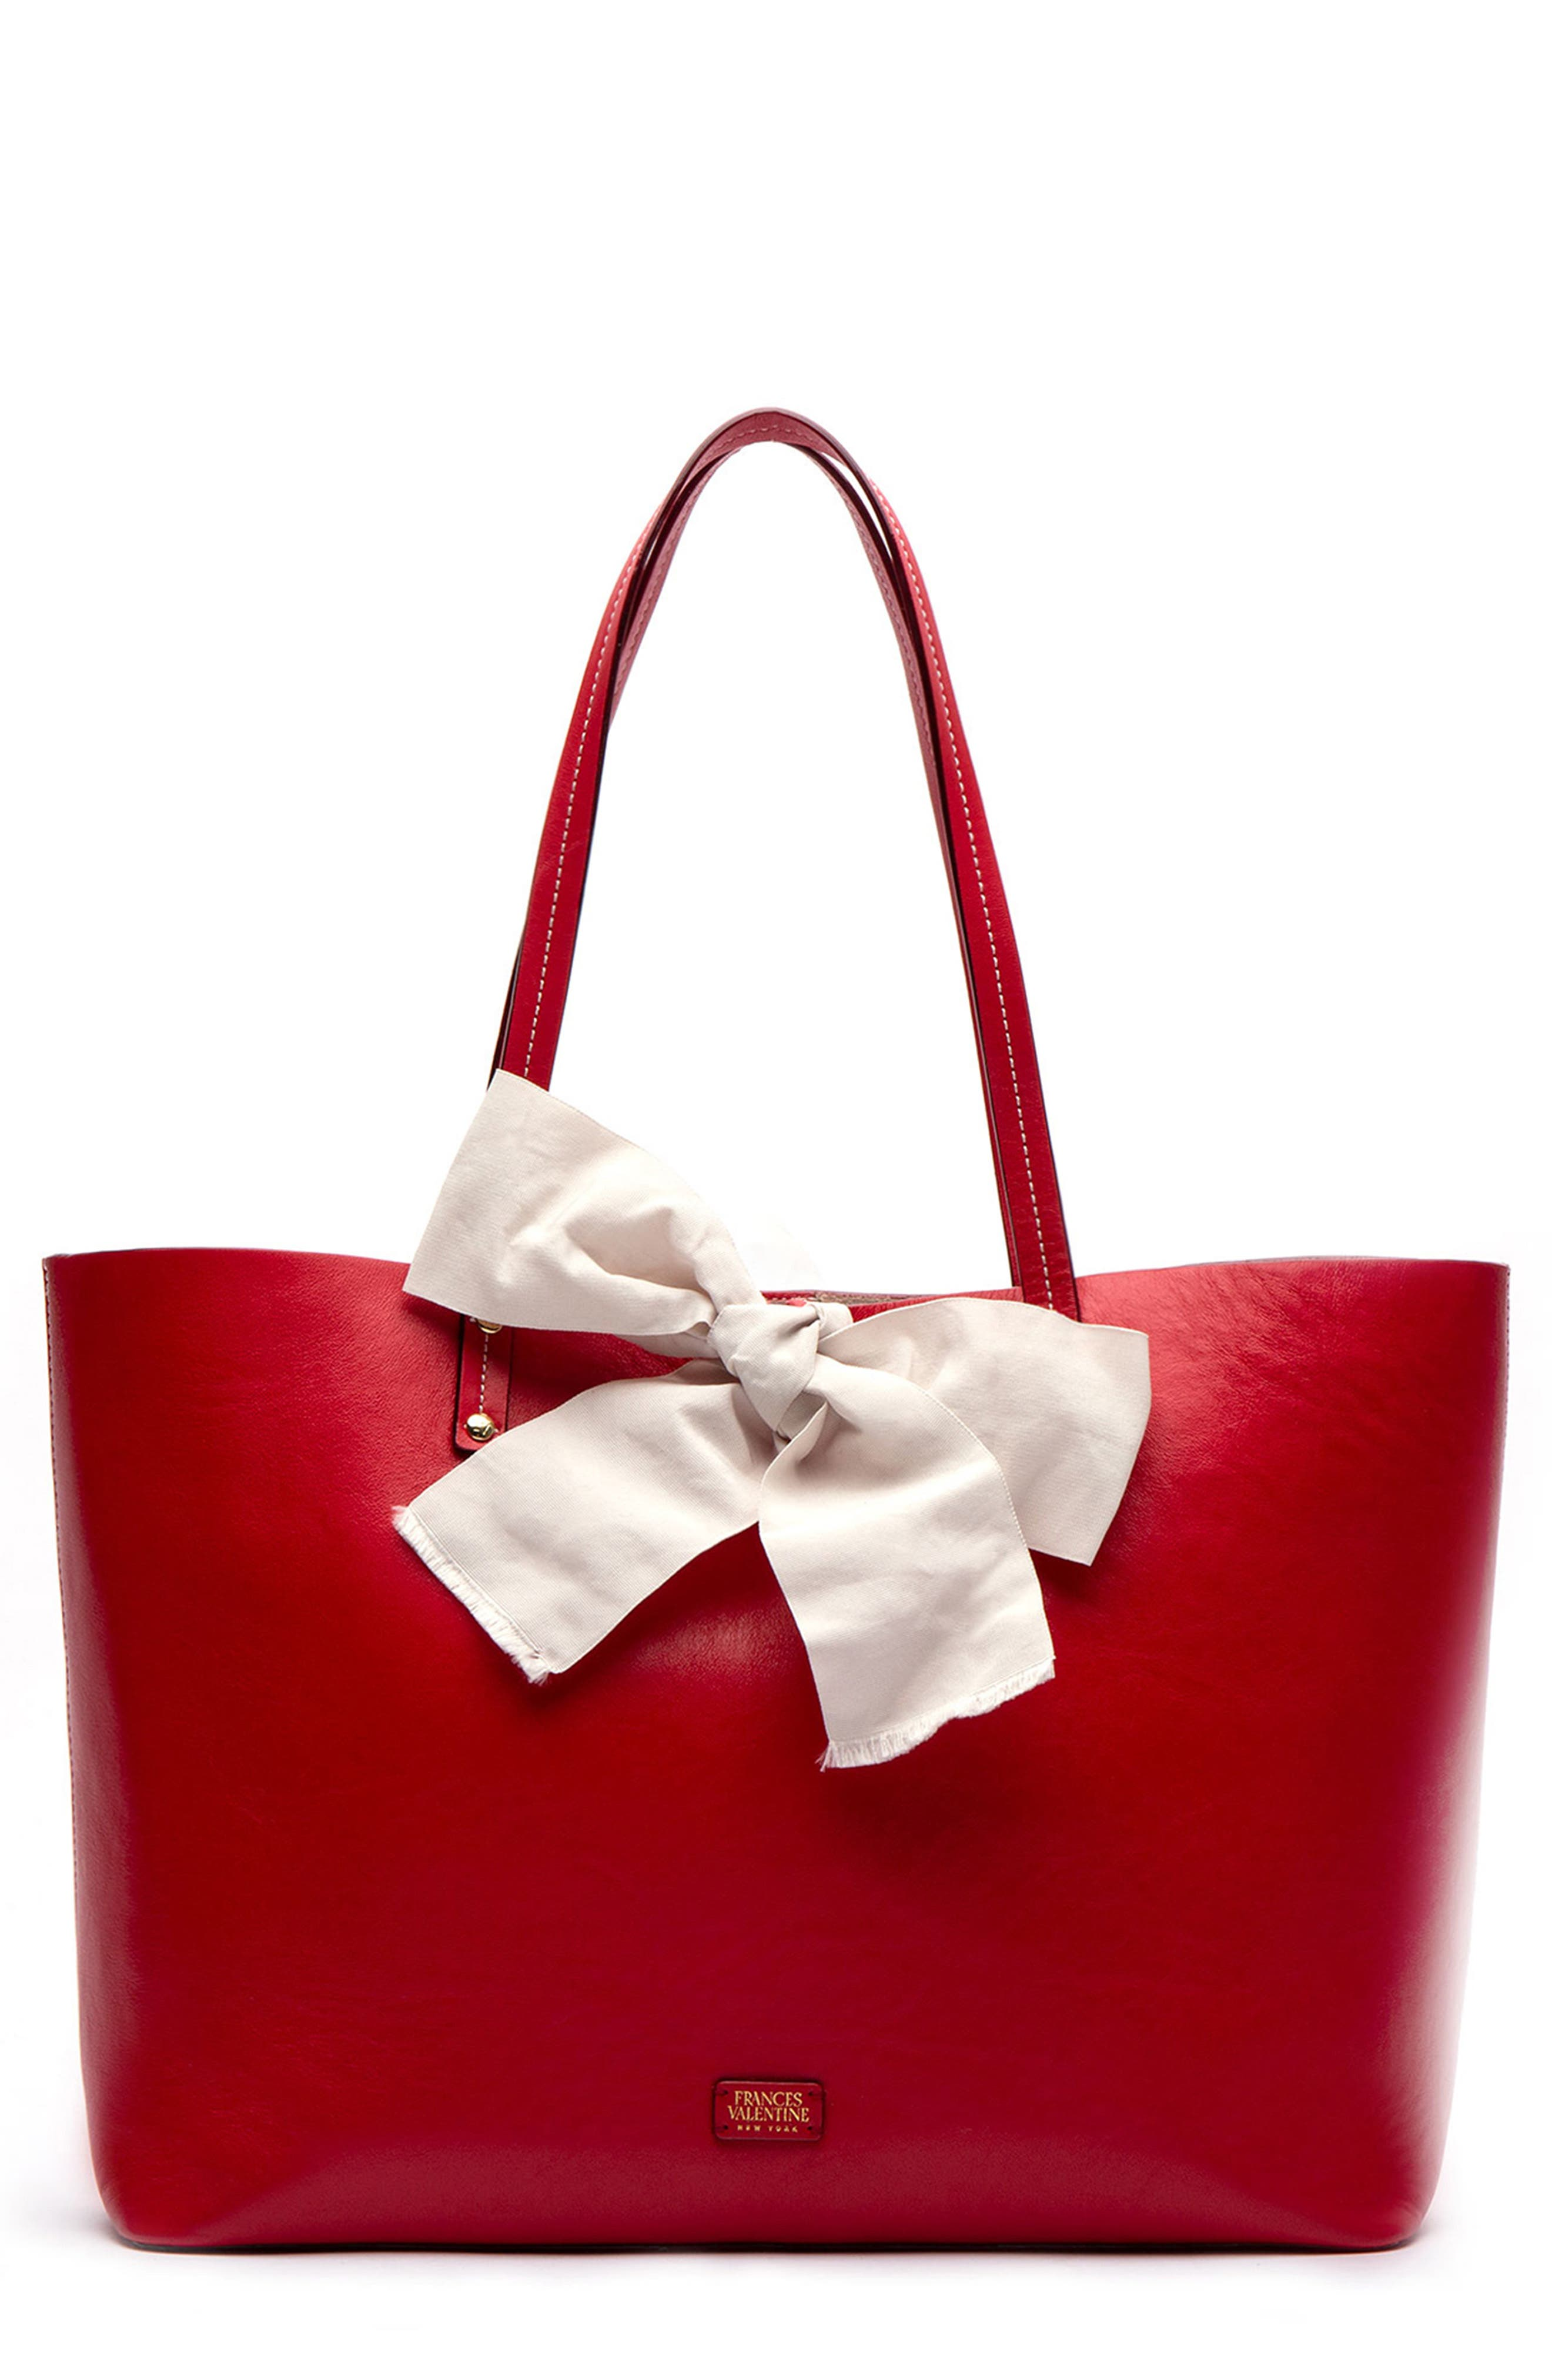 FRANCES VALENTINE Trixie Leather Tote in Red/ Oyster